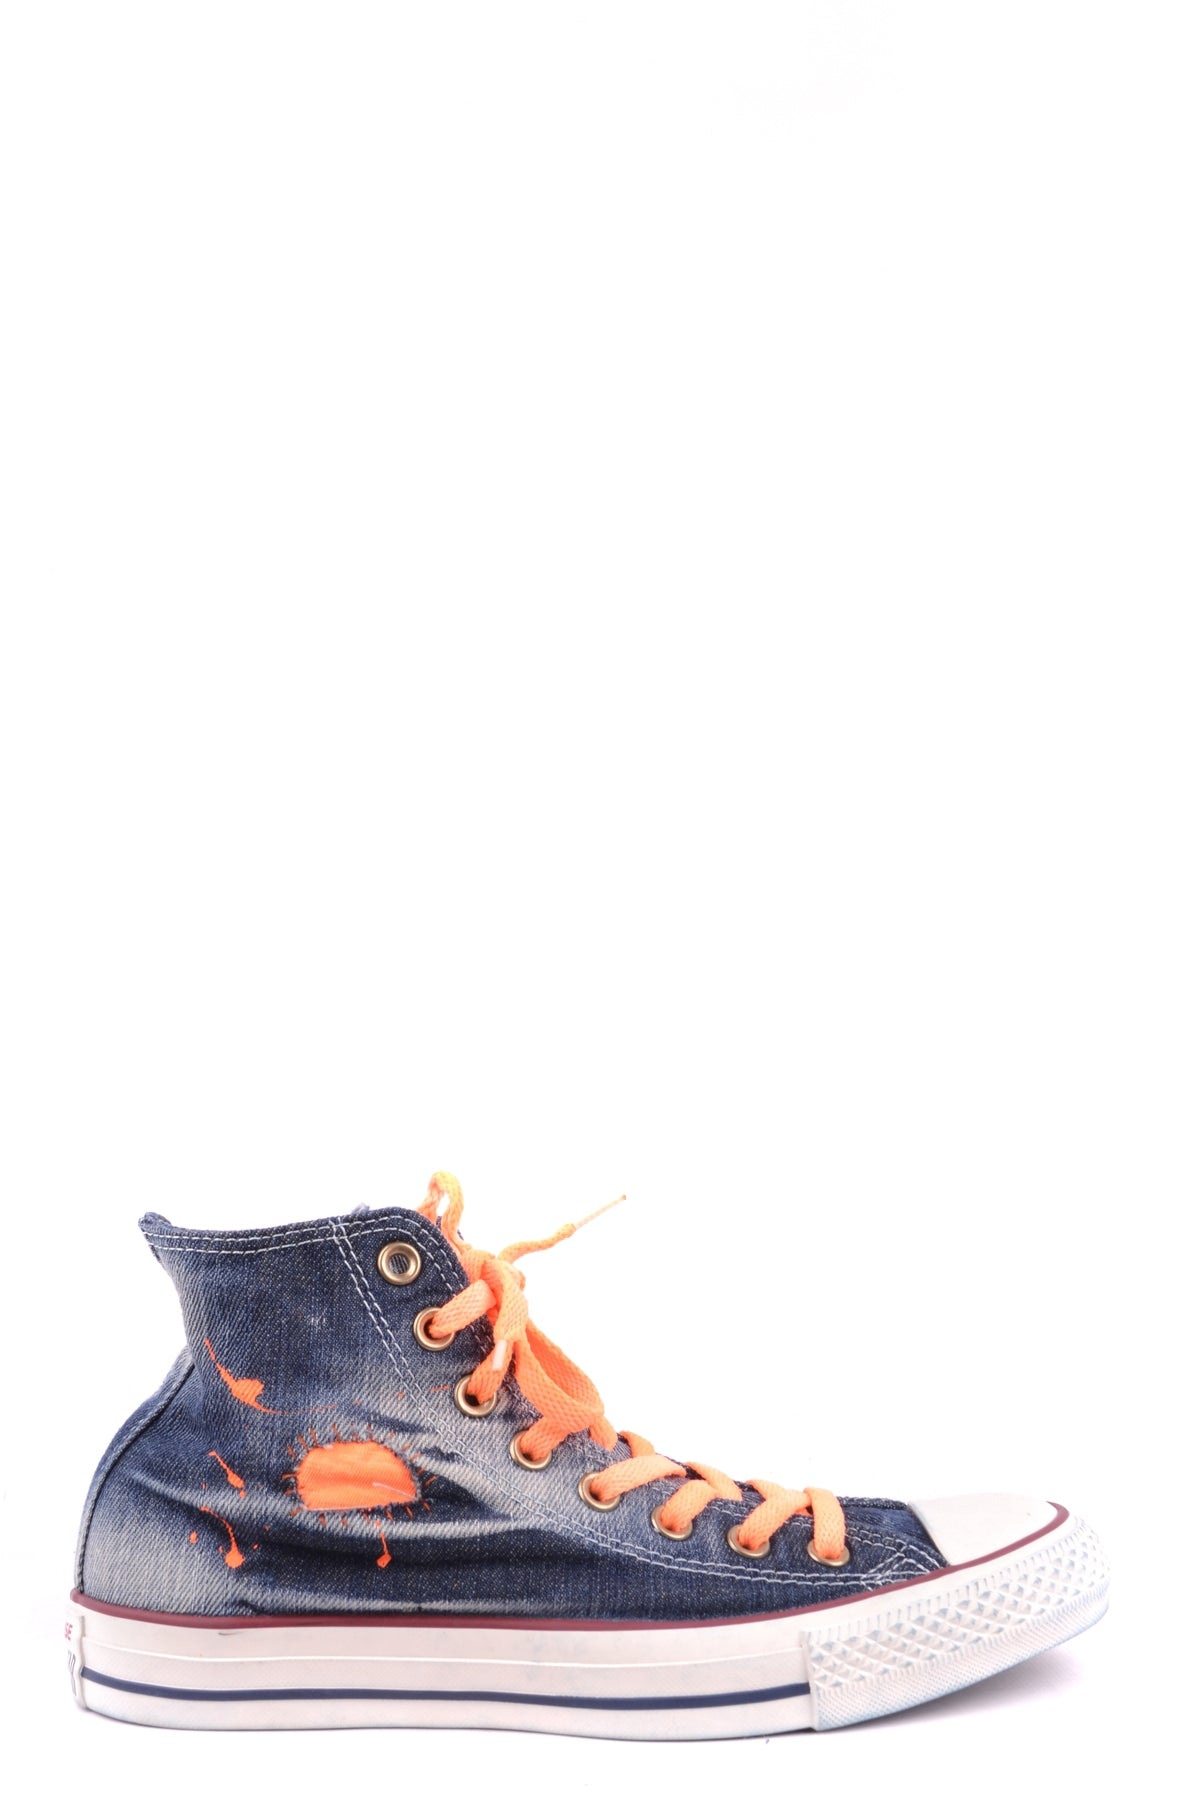 Shoes Converse All Star-Sneakers - WOMAN-36.5-Product Details Type Of Accessory: ShoesTerms: New With LabelYear: 2017Main Color: MulticolorSeason: Spring / SummerMade In: VietnamSize: EuGender: WomanComposition: Tissue 100%-Keyomi-Sook